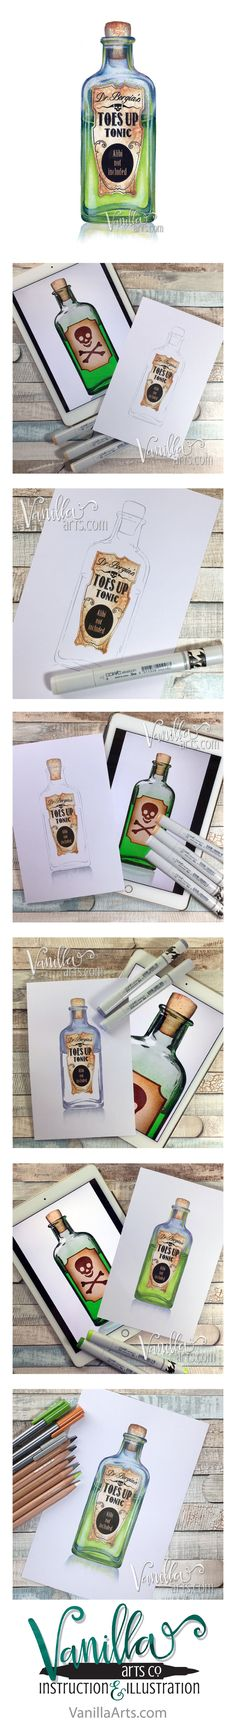 Tonic- a challenge level class for Copic colorers. Learn to color glass and transparent objects. | VanillaArts.com